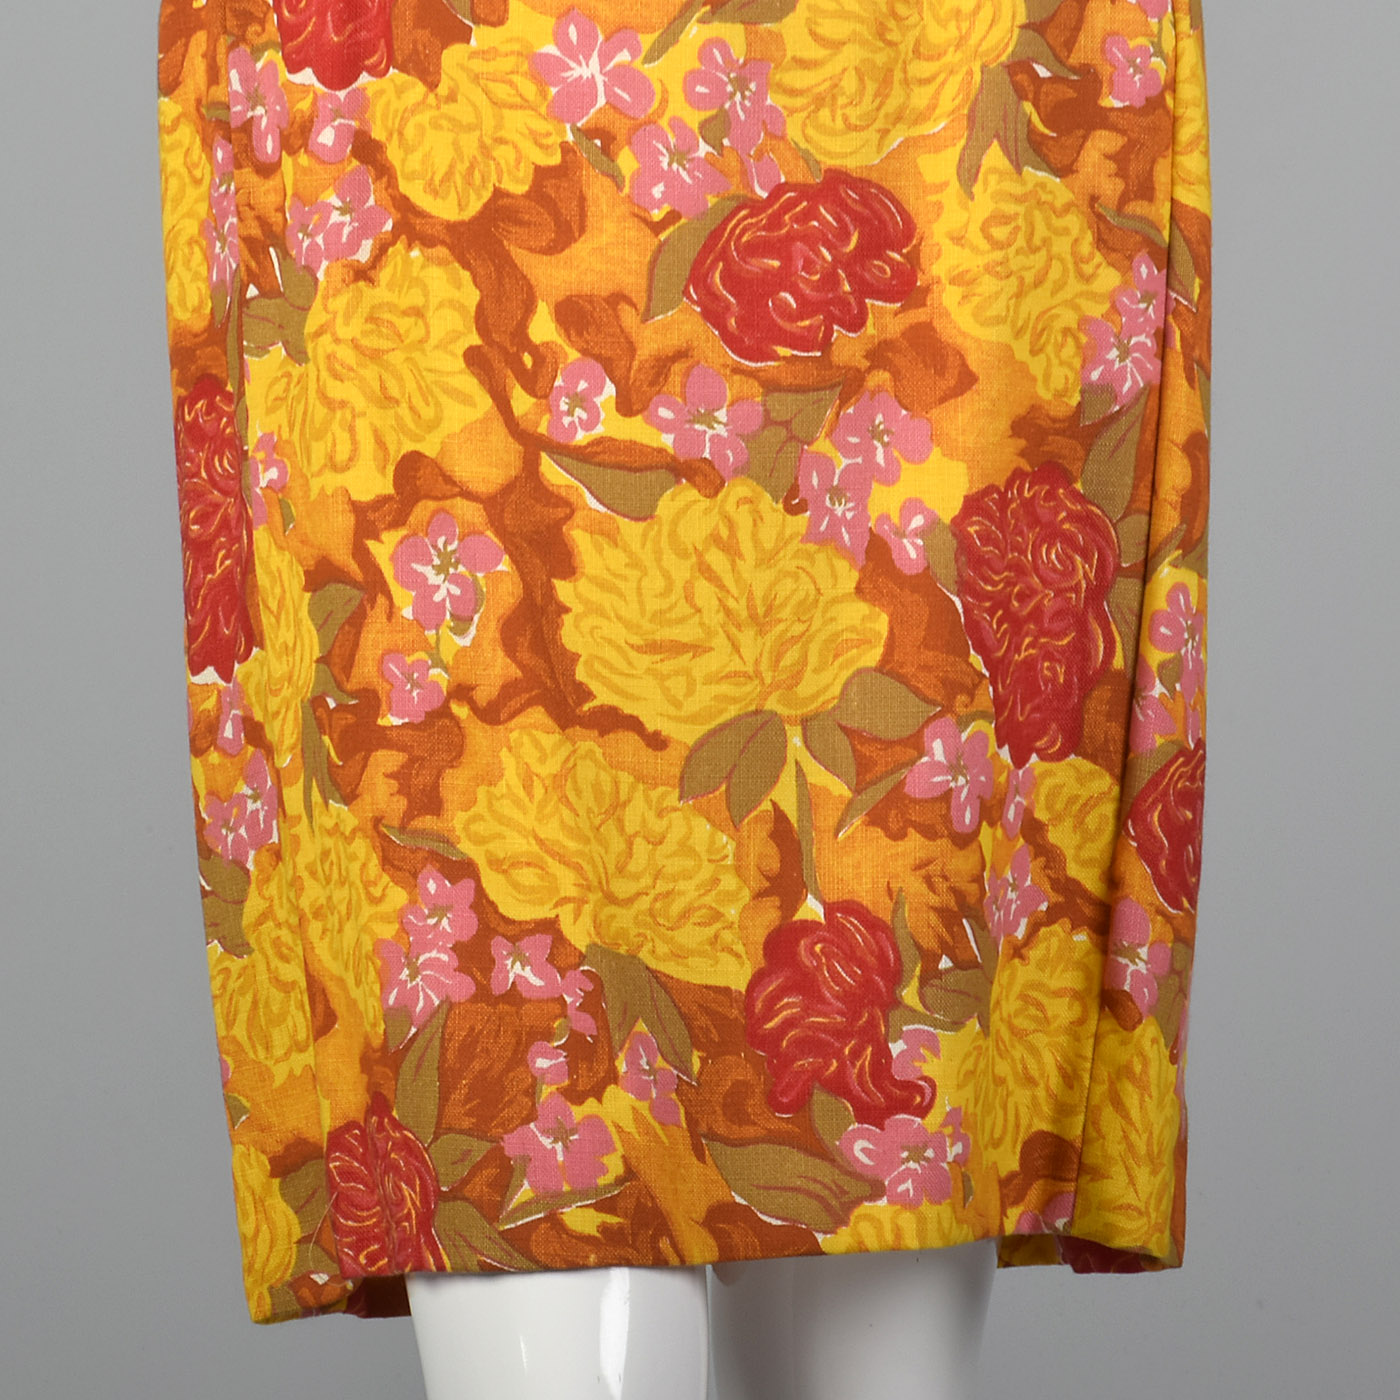 1960s Deadstock Shift Dress in a Vibrant Floral Print